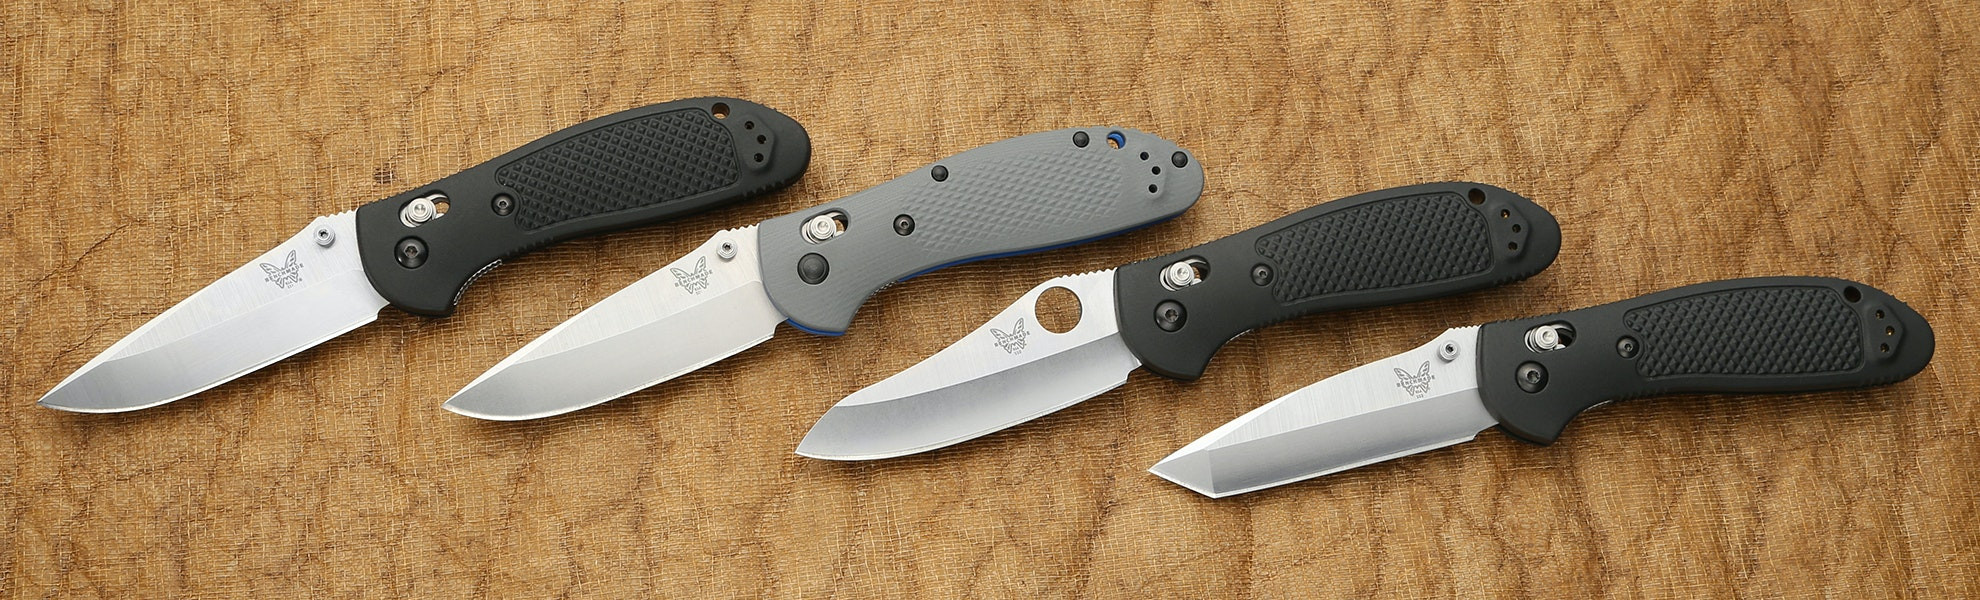 Benchmade Griptilian Folding Knife